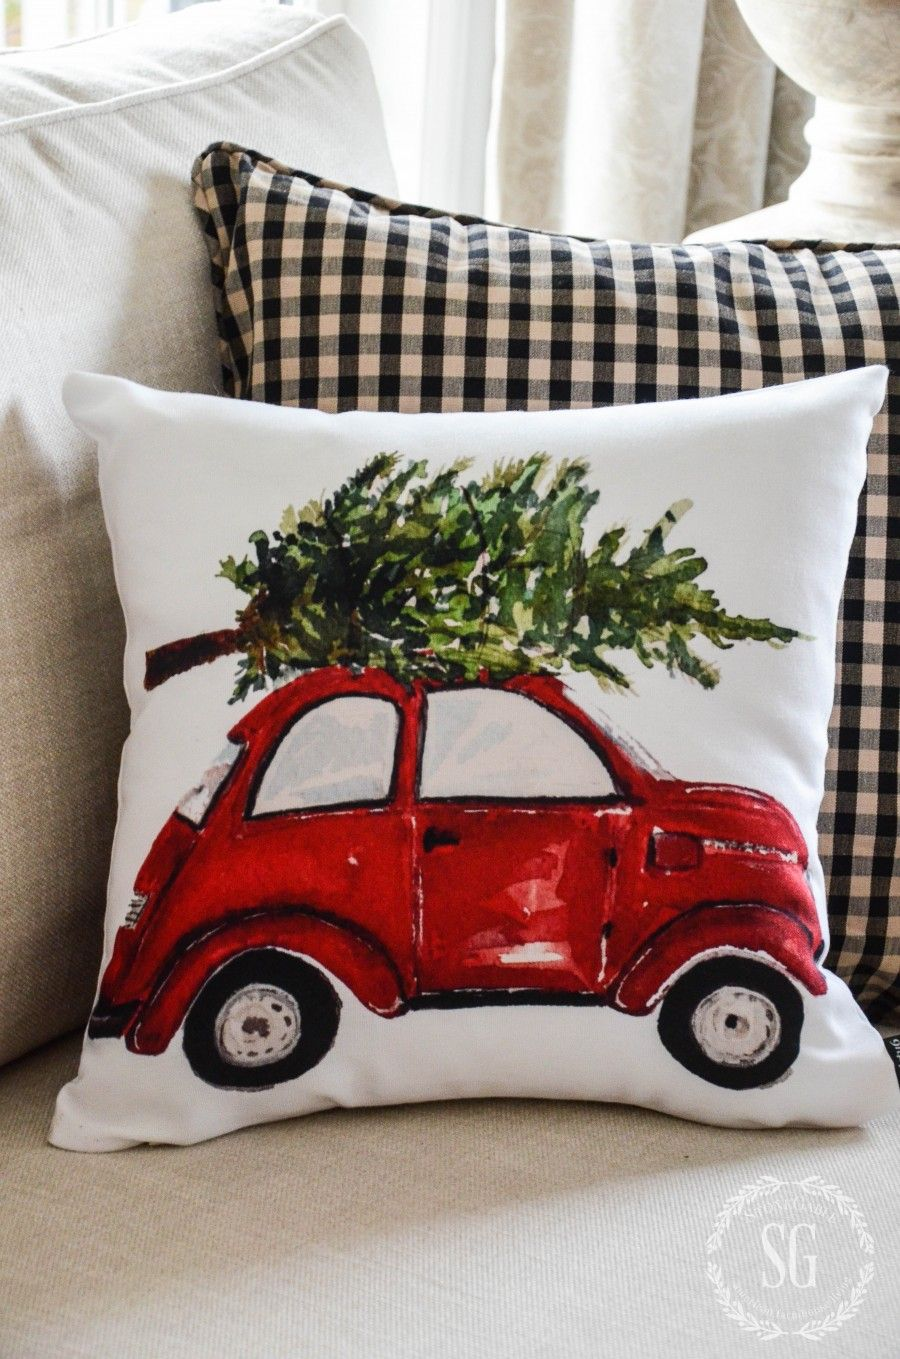 CHRISTMAS PILLOW LOVE. Decorate your home with festive Christmas Pillows…